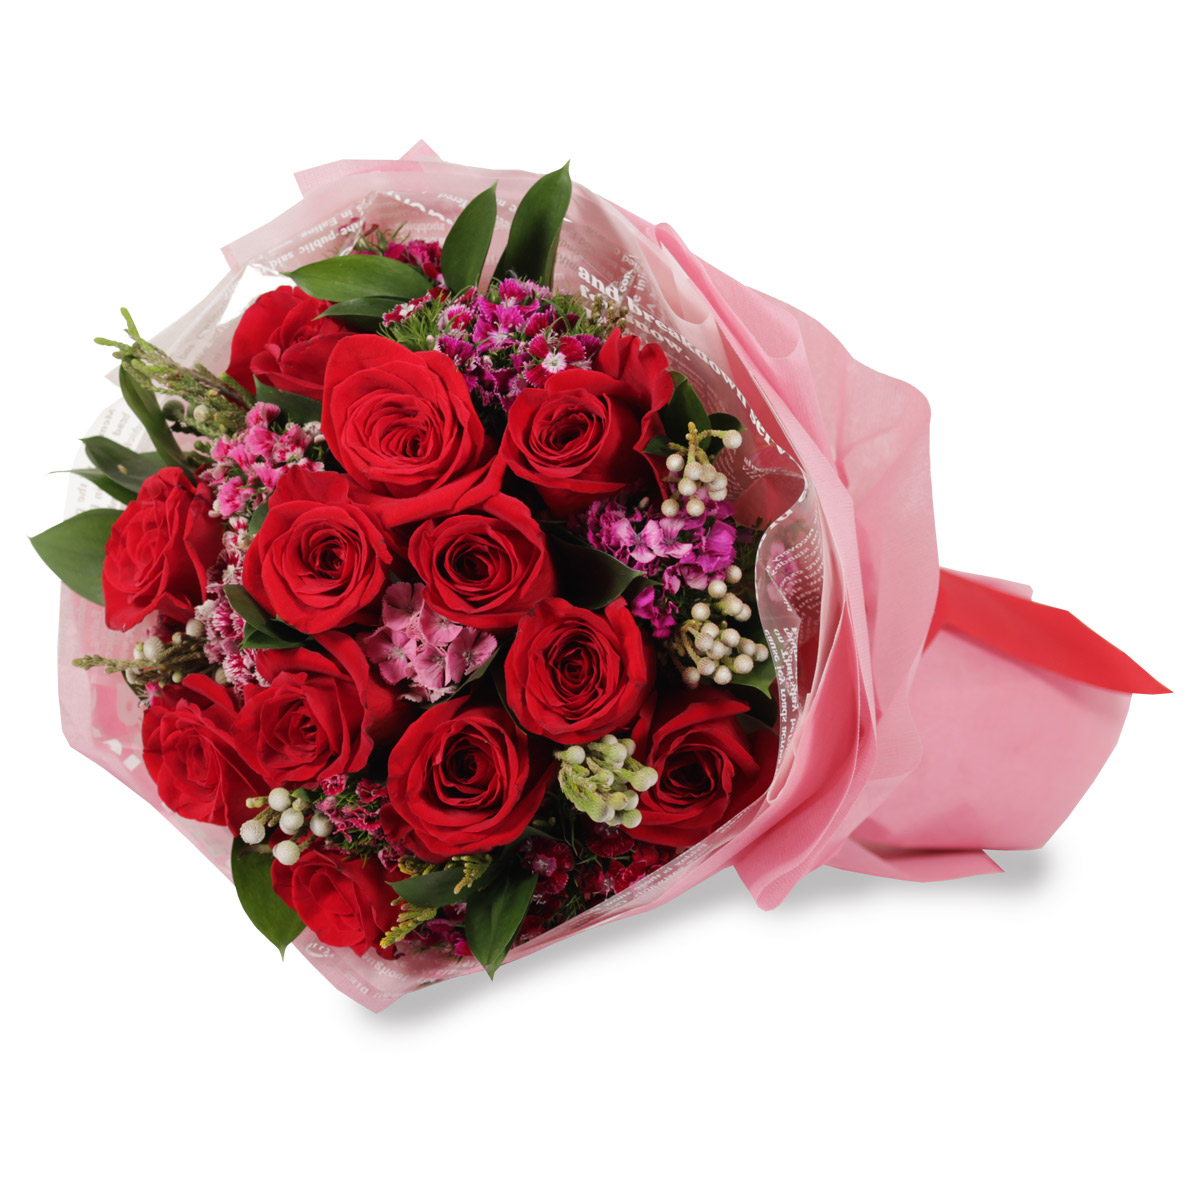 VD1705 12 stalks round bouquet